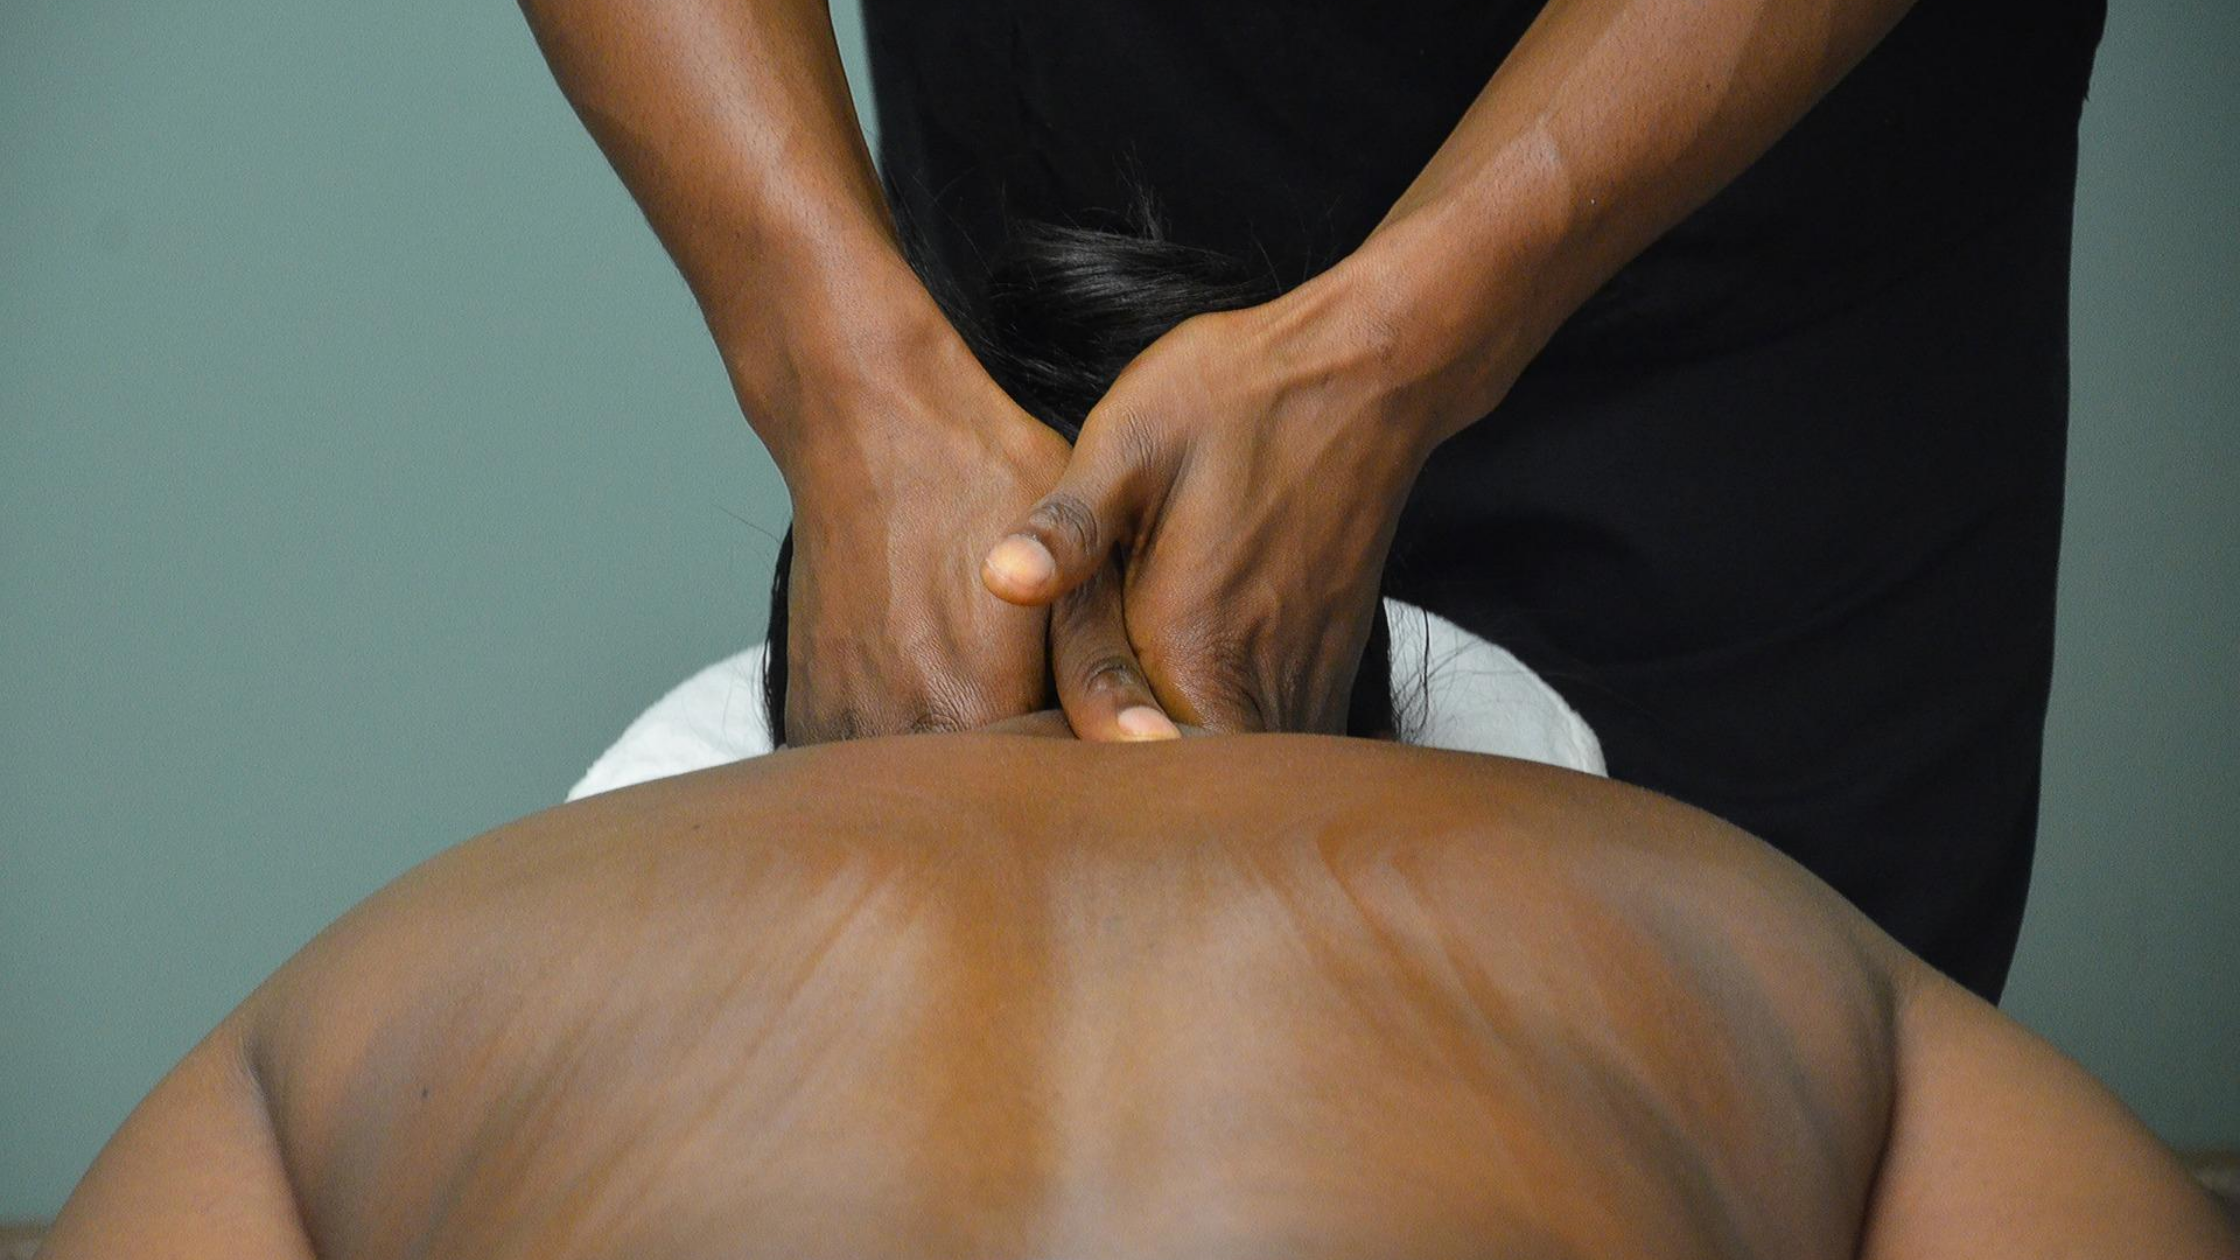 Hands massaging back and neck.